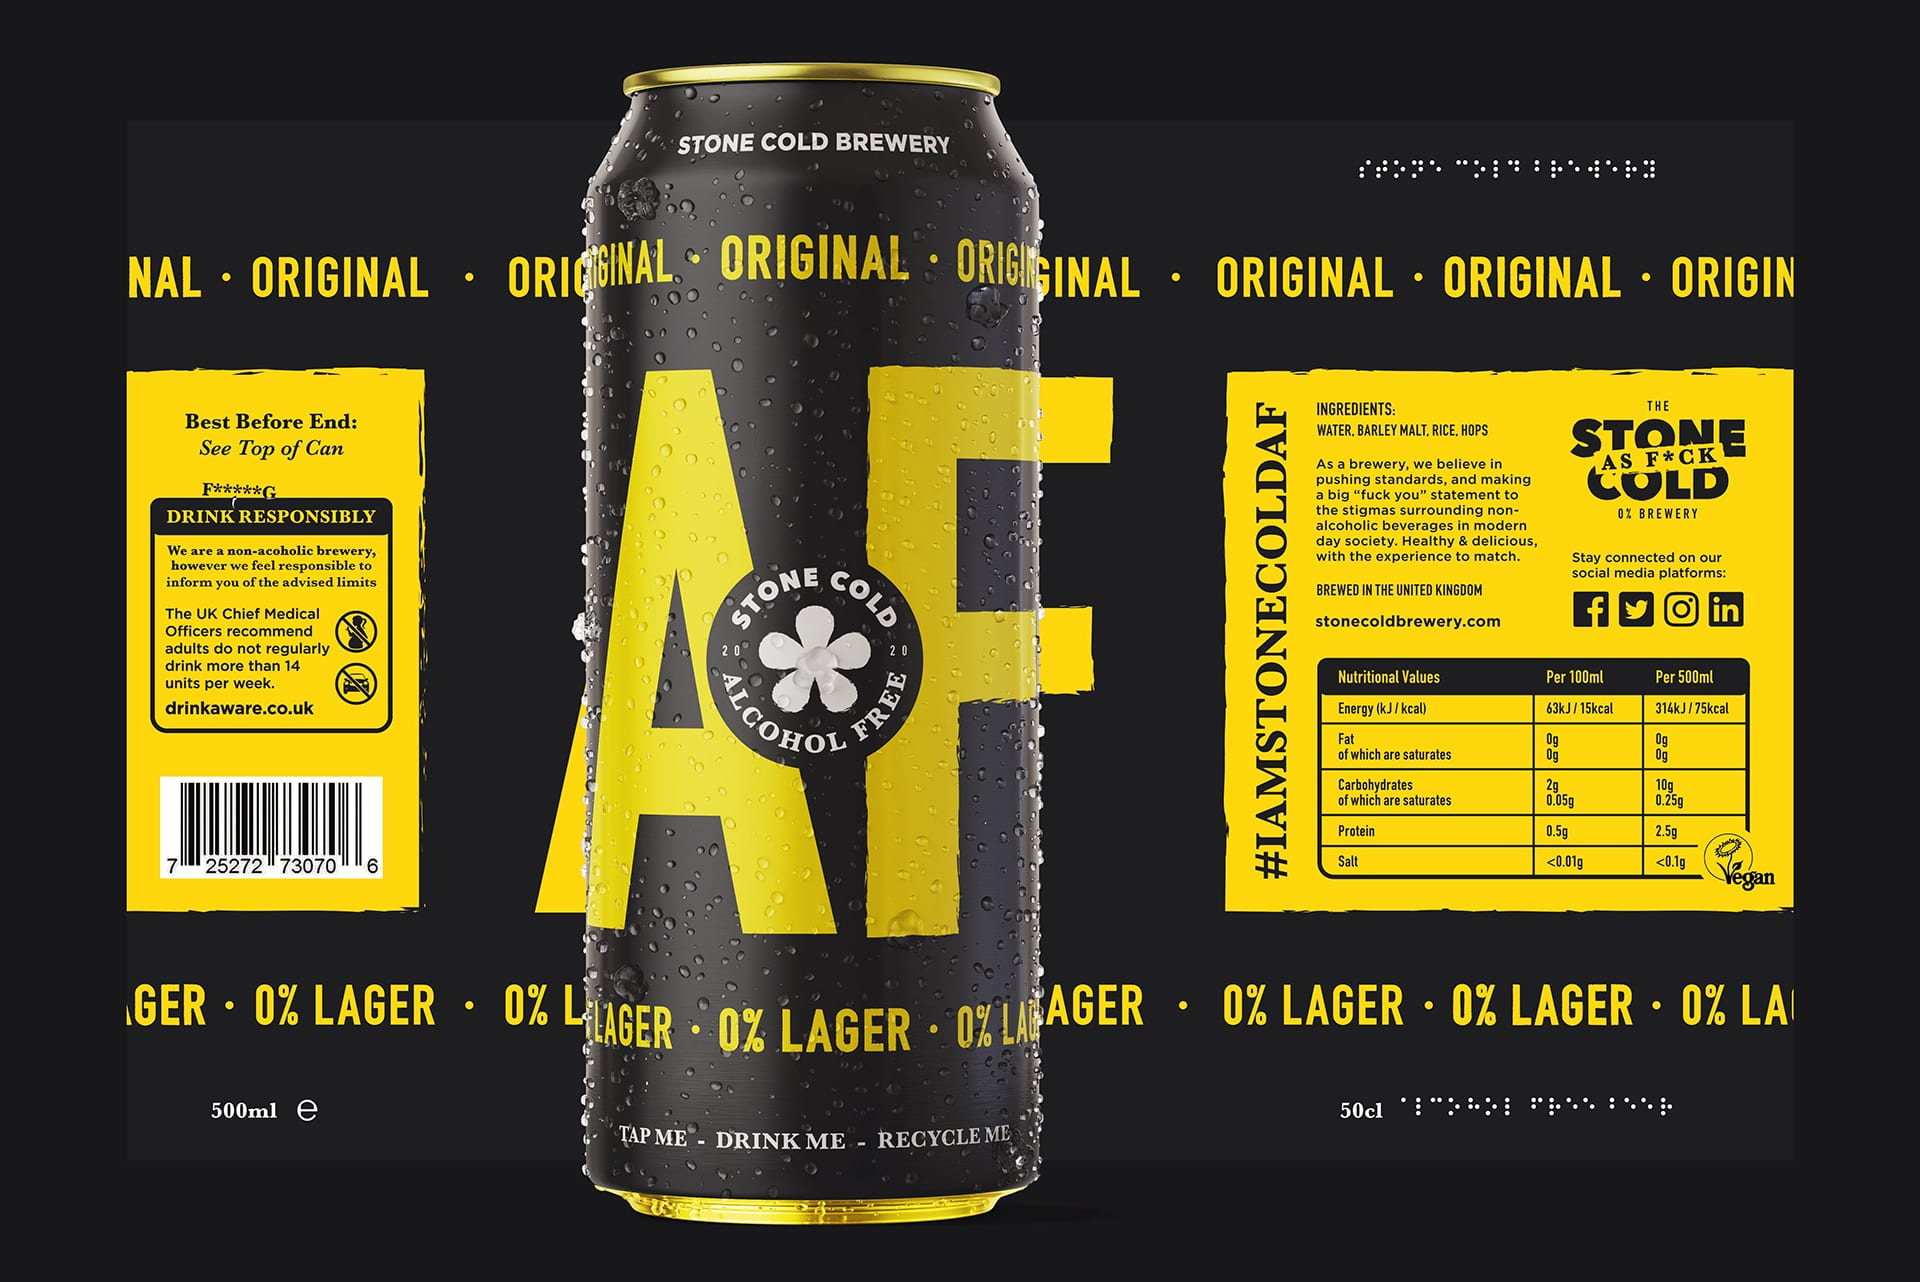 Stone Cold Alcohol Free Beer Can + Label - Original 0% Lager